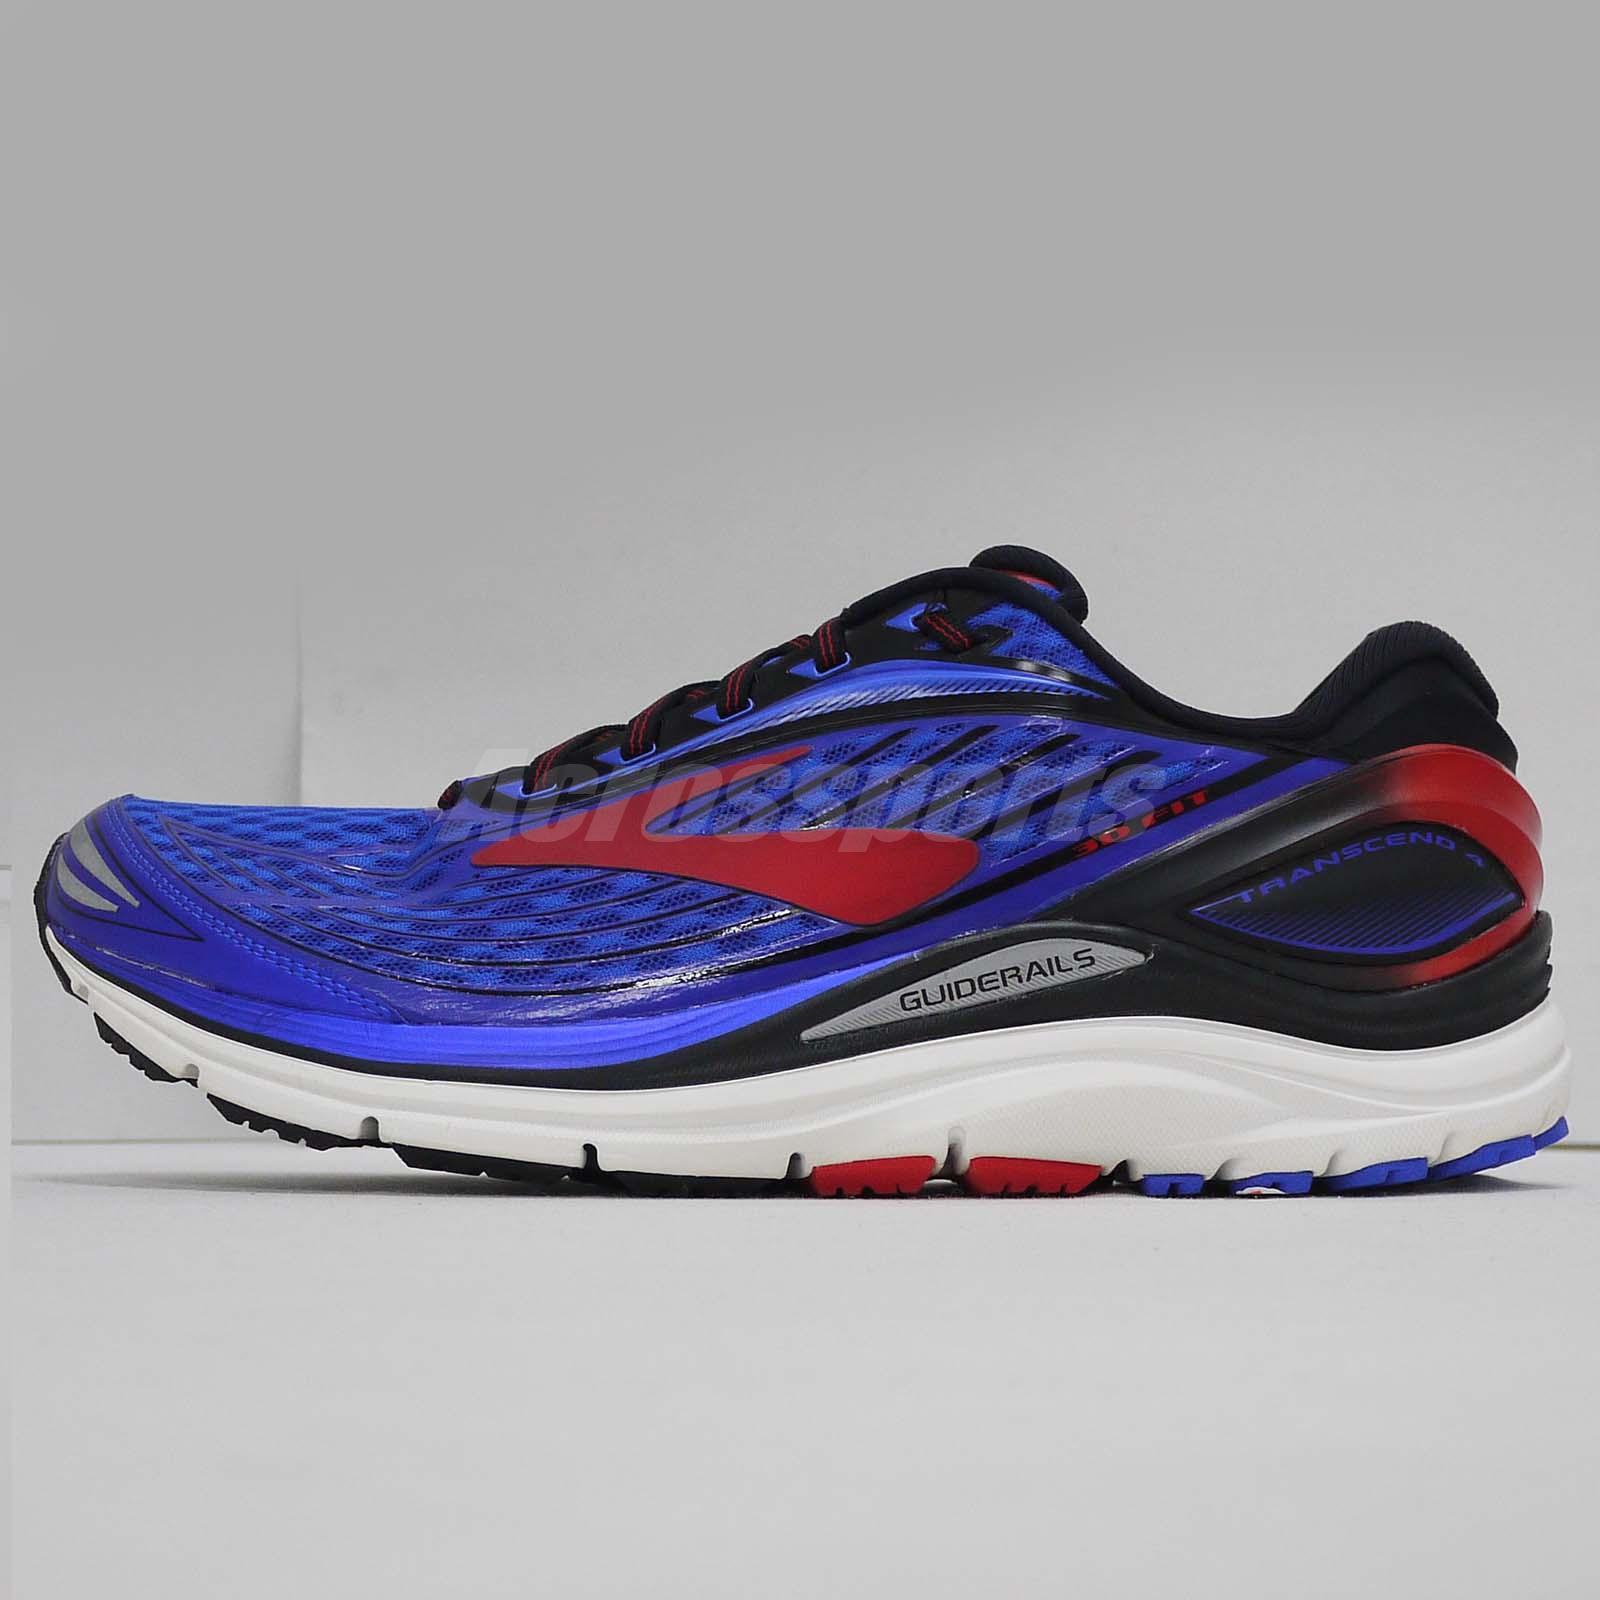 74890fa22ab Brooks Transcend 4 Blue Red Running Shoes Insole with some Stains 110249-1D